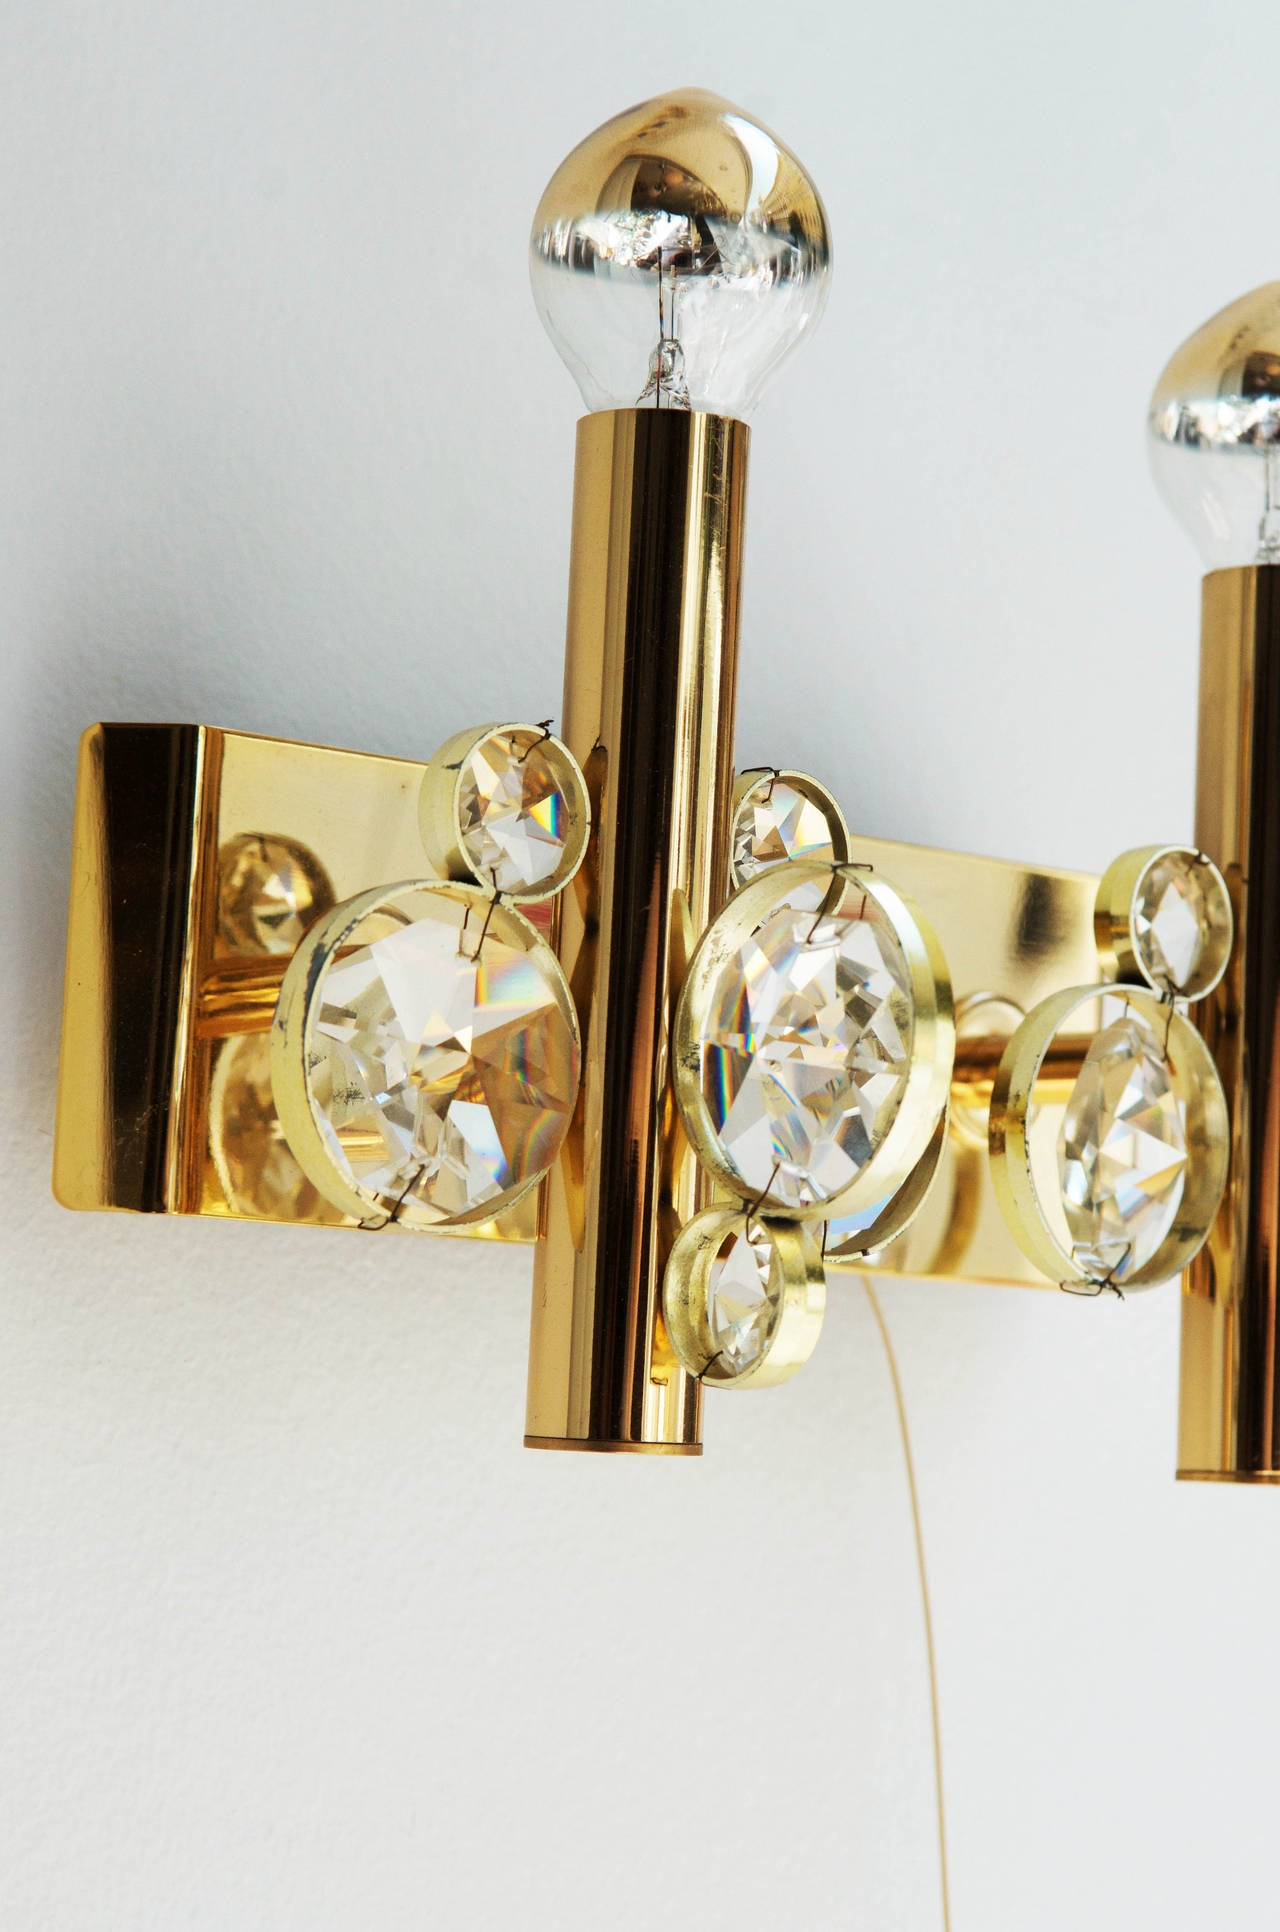 Impressive Cut Crystal Wall Sconce Attributed to Gaetano Sciolari In Excellent Condition For Sale In Vienna, AT